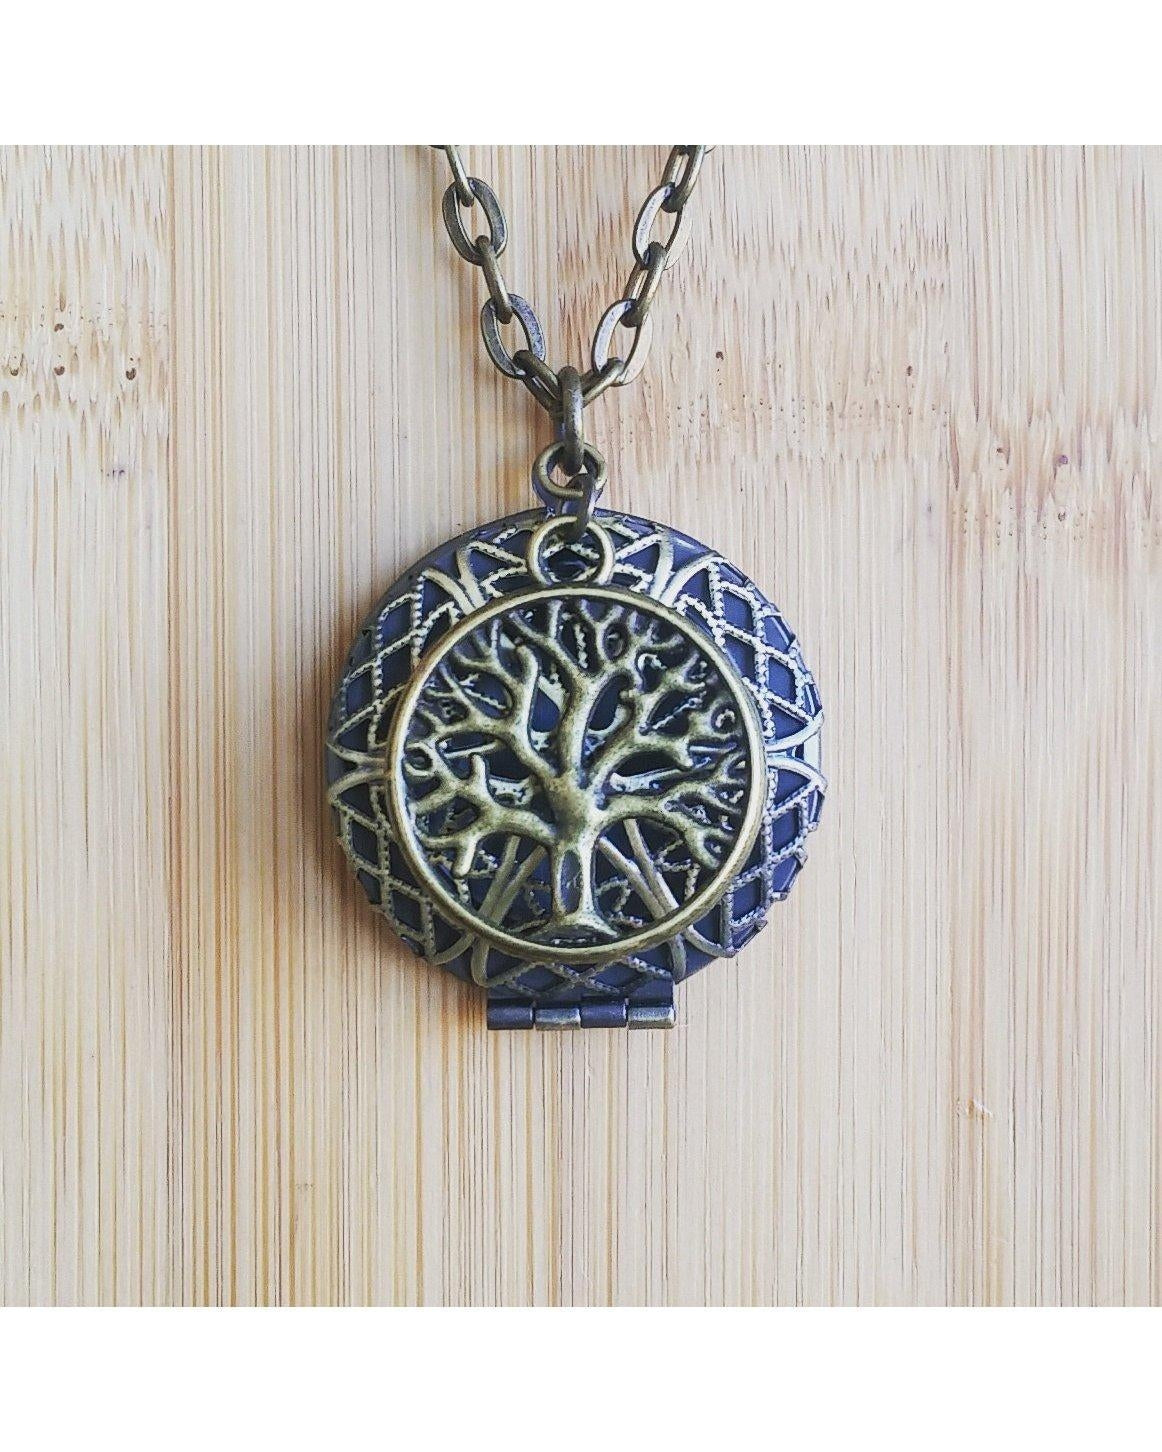 Tree of Life Inspired Antique Bronze Sunburst Round Essential Oil Aromatherapy Diffuser Locket Pendant Necklace C019 - Essentially Elegant